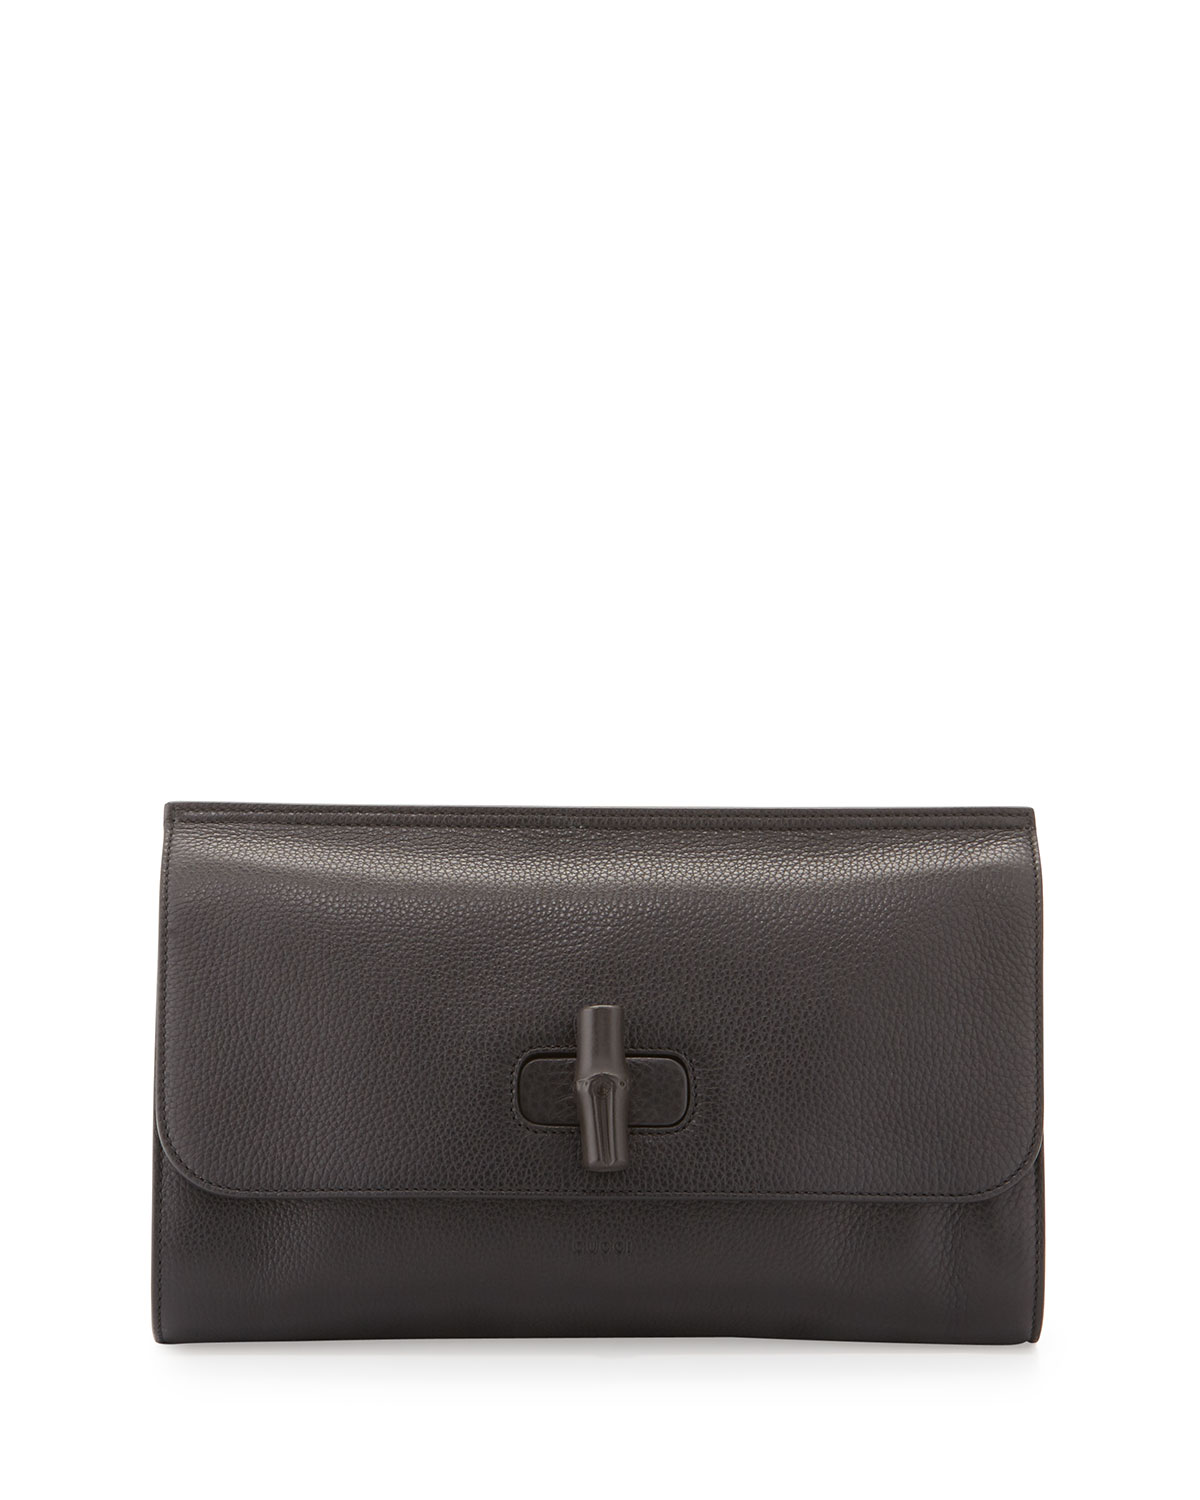 908a2367340a Gucci Bamboo Daily Leather Clutch Bag, Black | Neiman Marcus